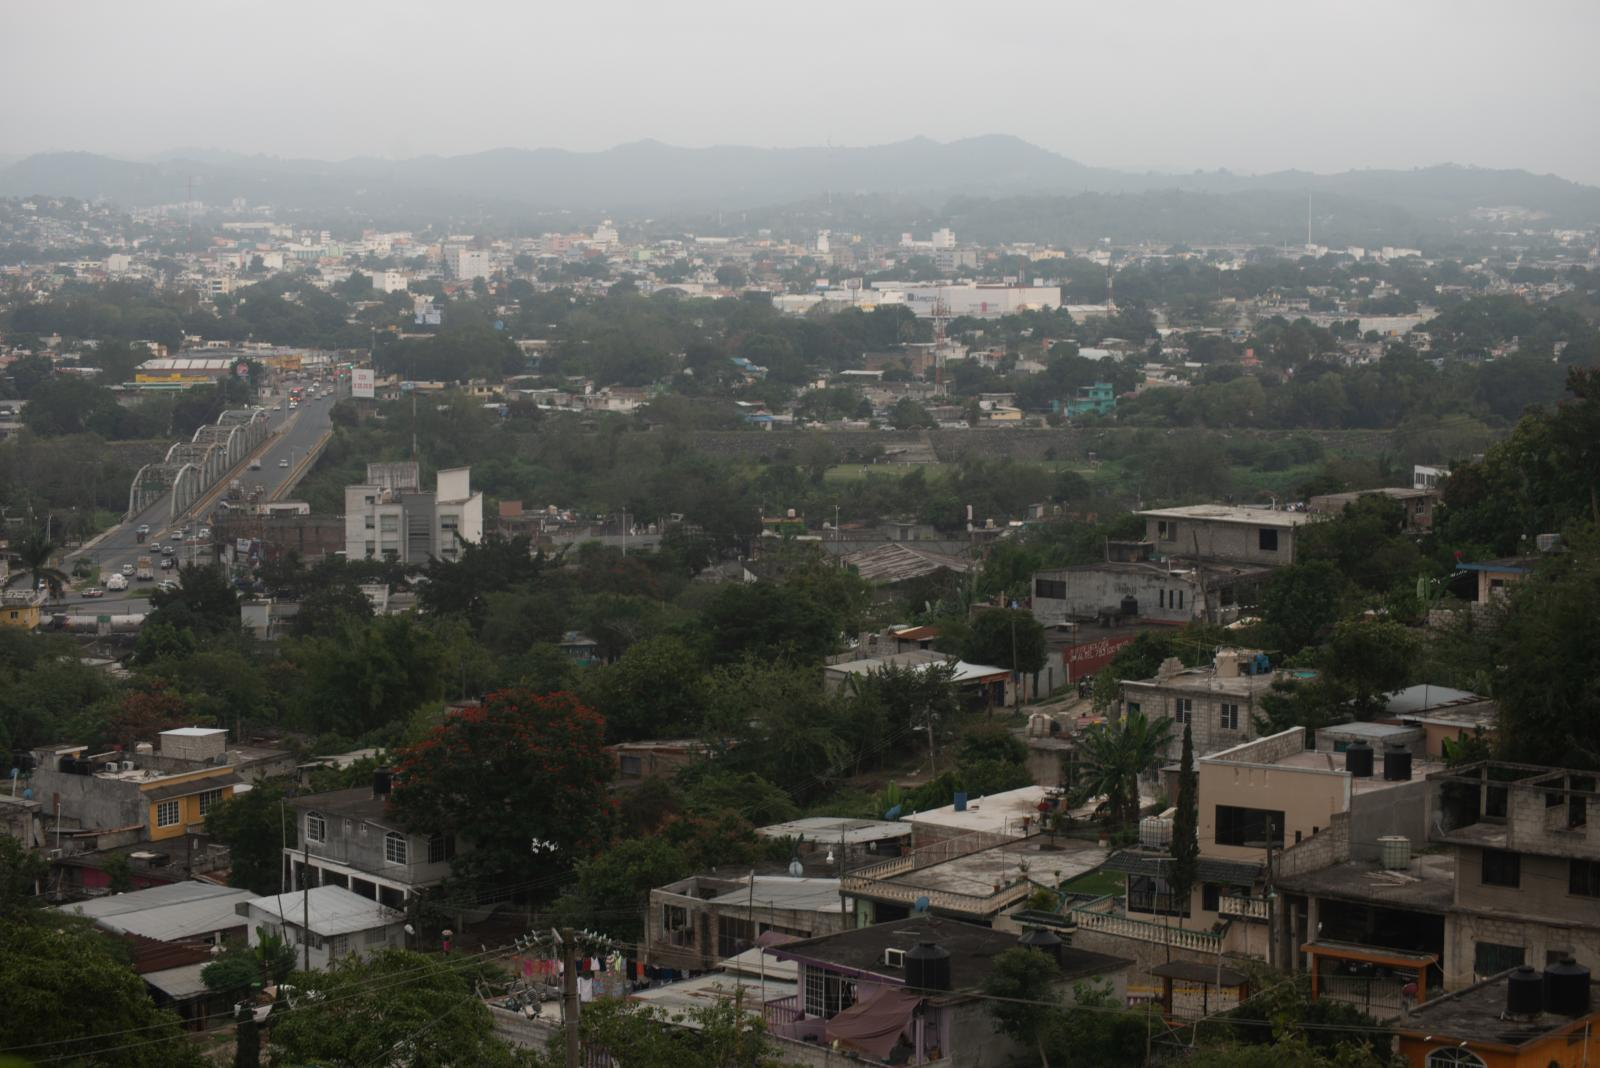 View of a neighborhood near the field that is investigated by police authorities and family groups participating in the fifth National Missing Persons Search Brigade in Tihuatlan, Veracruz, Mexico, on February 20, 2020. Victoria Razo for NPR